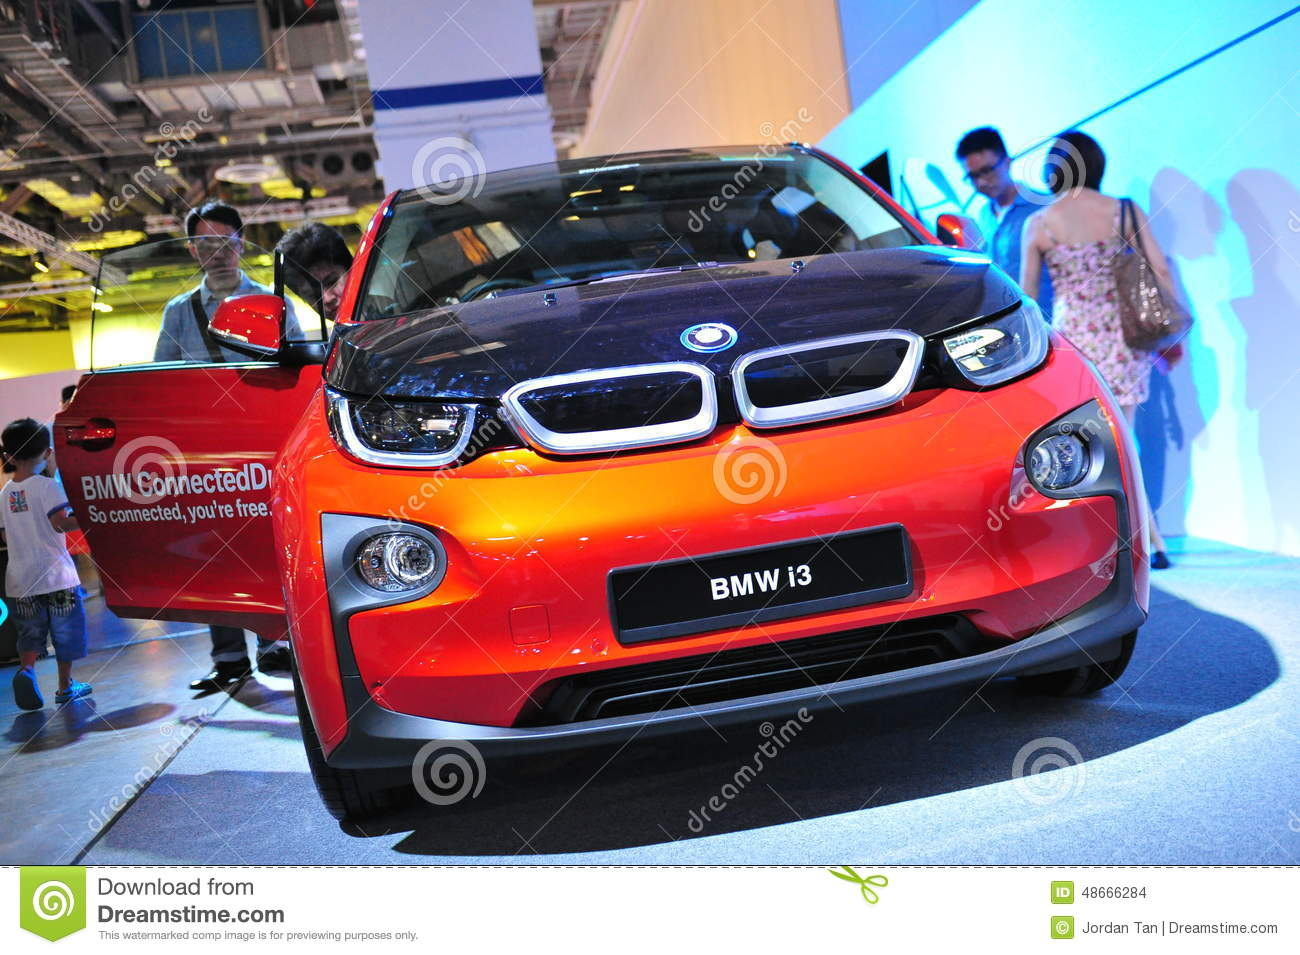 Bmw I3 Urban Electric Car On Display At Bmw World 2014 Editorial